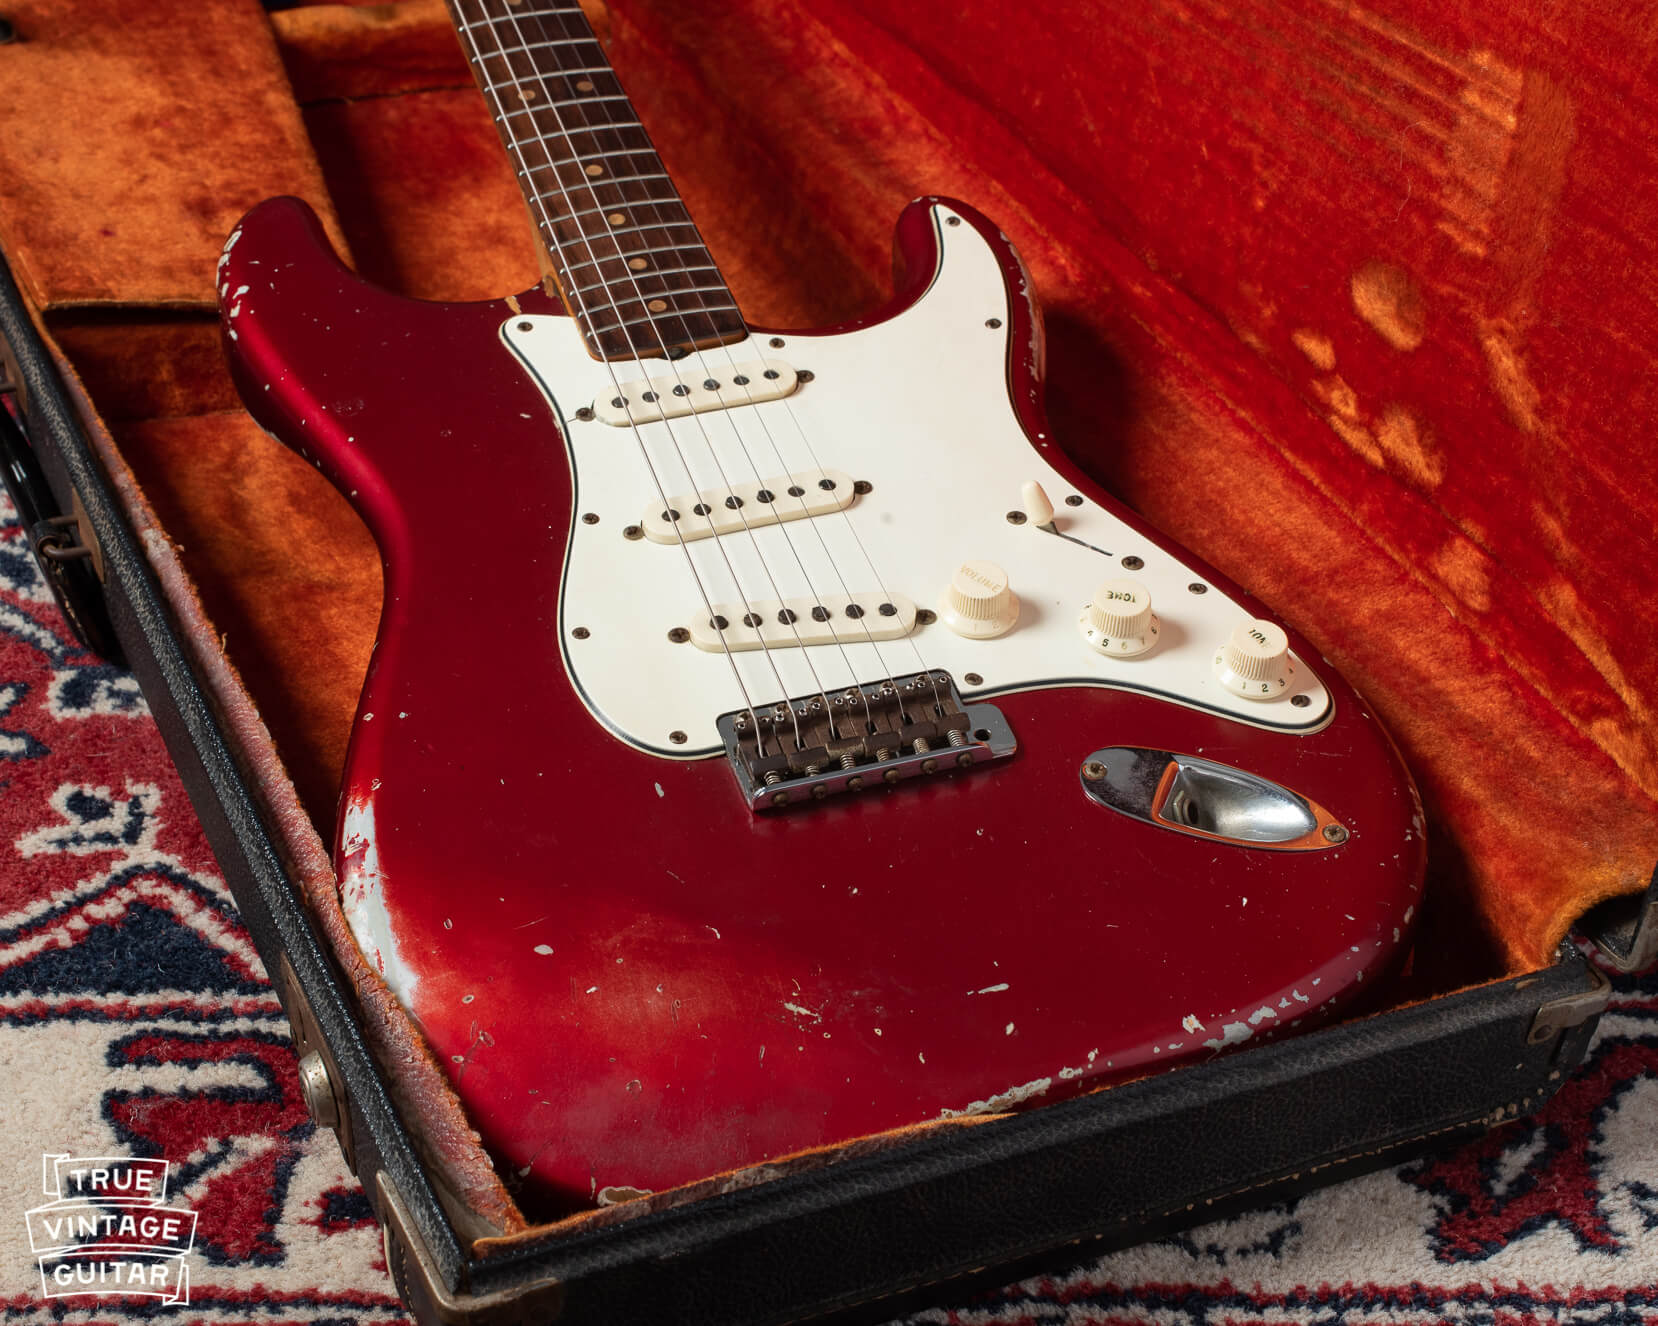 Fender Stratocasters 1960s Red guitar